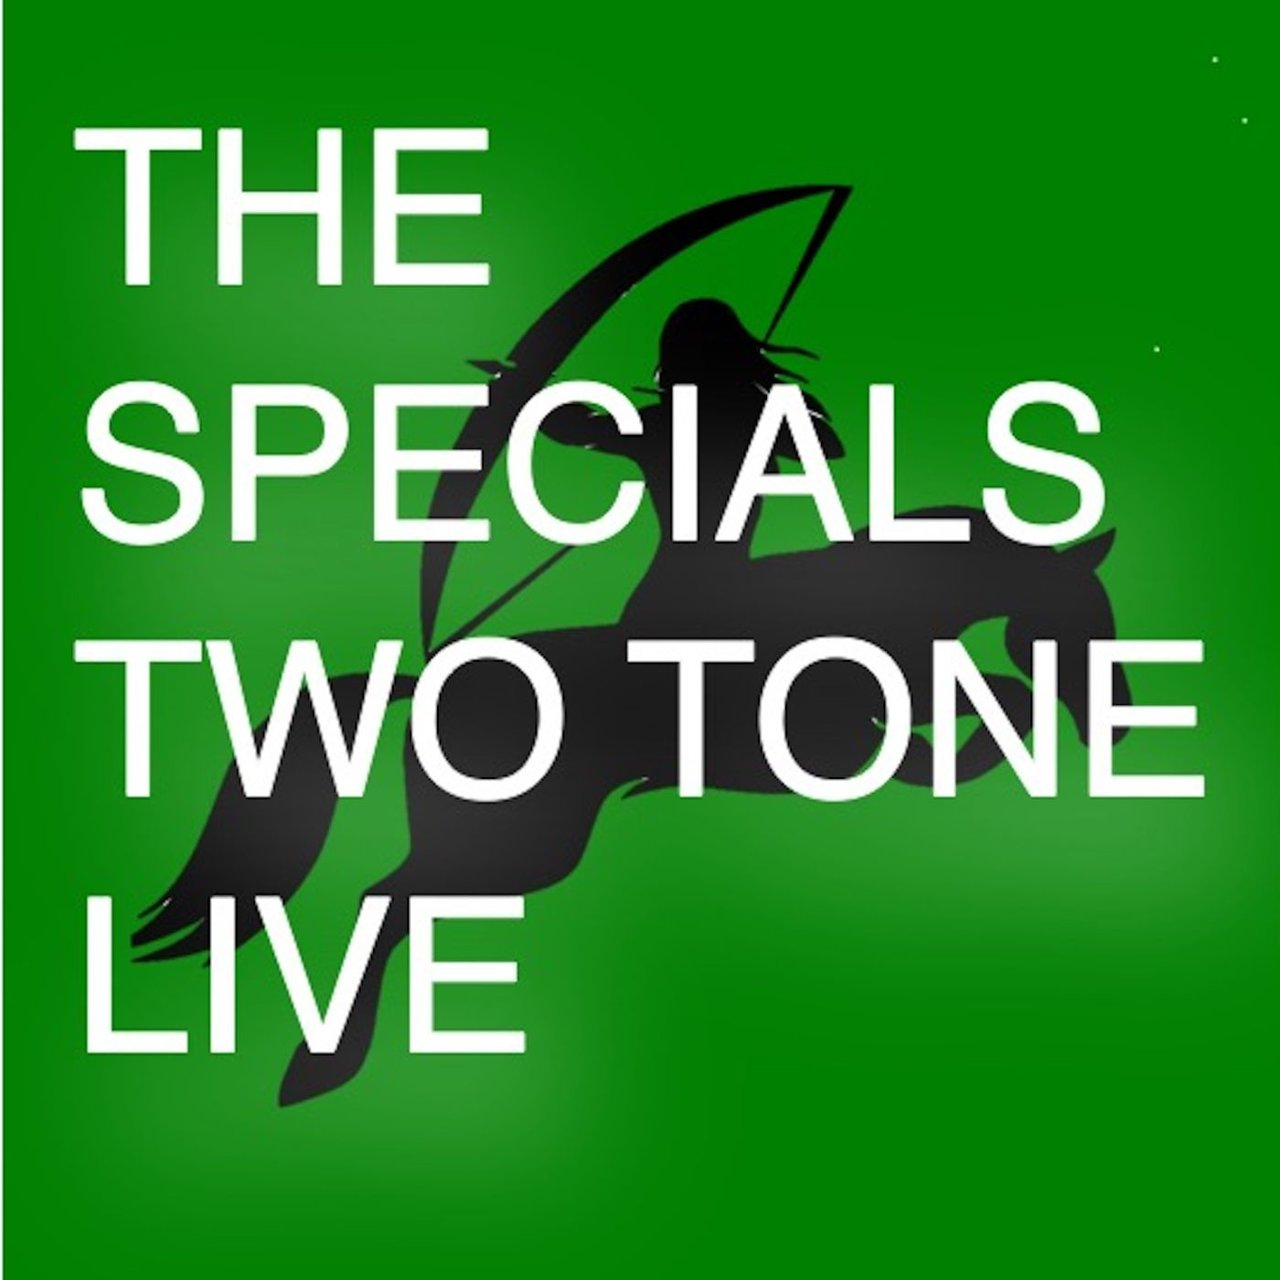 Two Tone Live